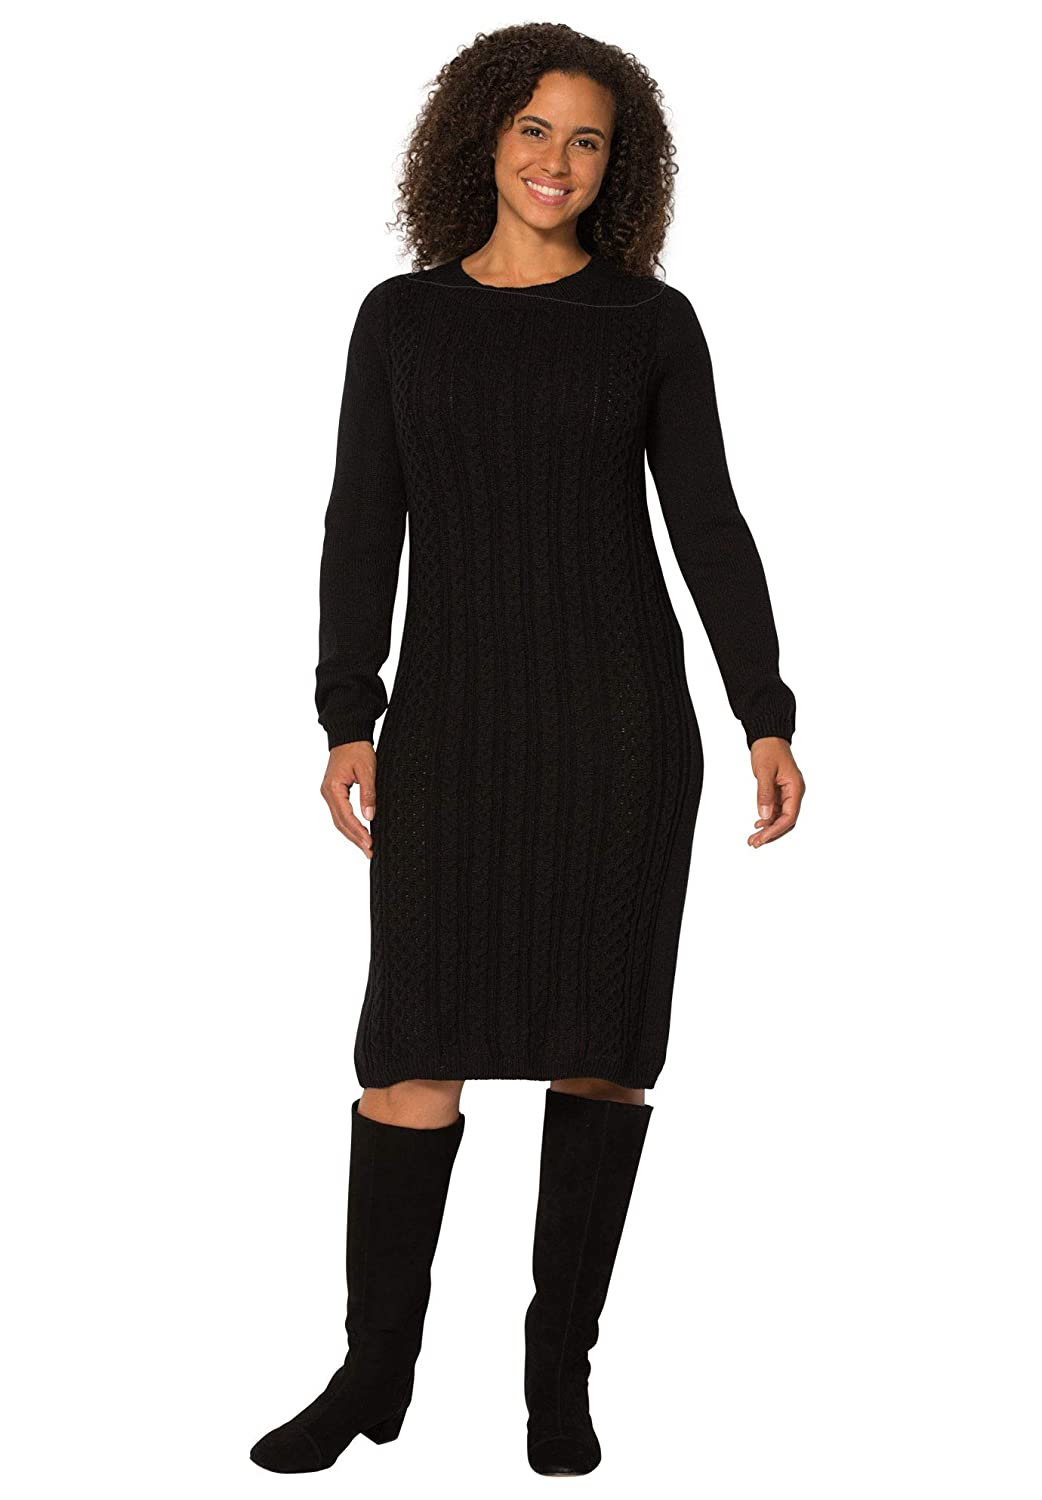 Woman Within Women\'s Plus Size Cableknit Sweater Dress